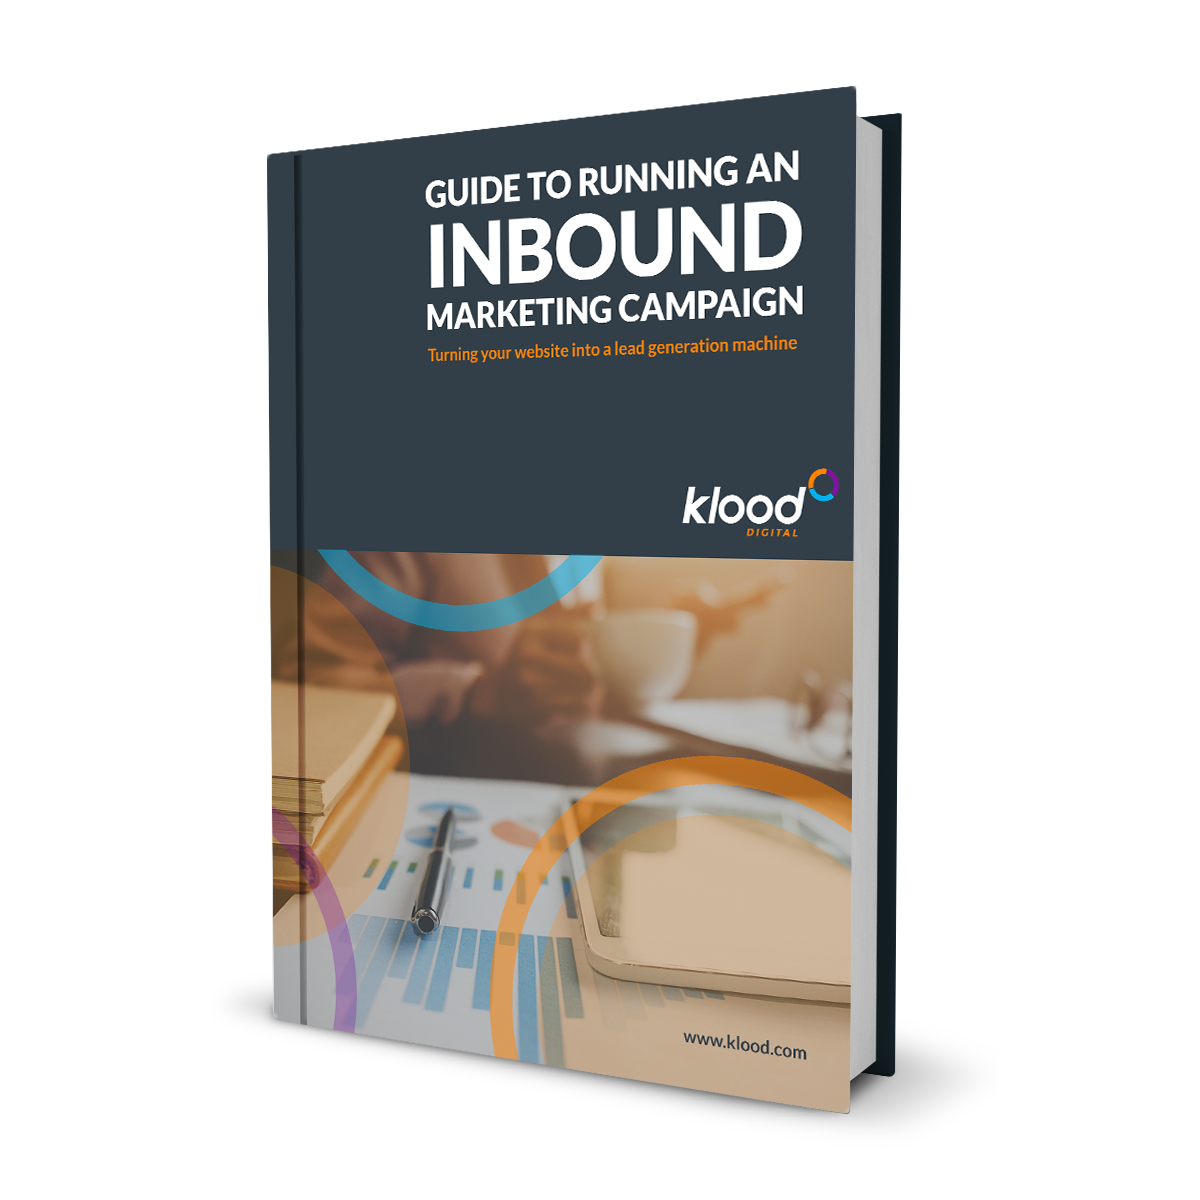 How to run an inbound marketing campaign - Free marketing resource